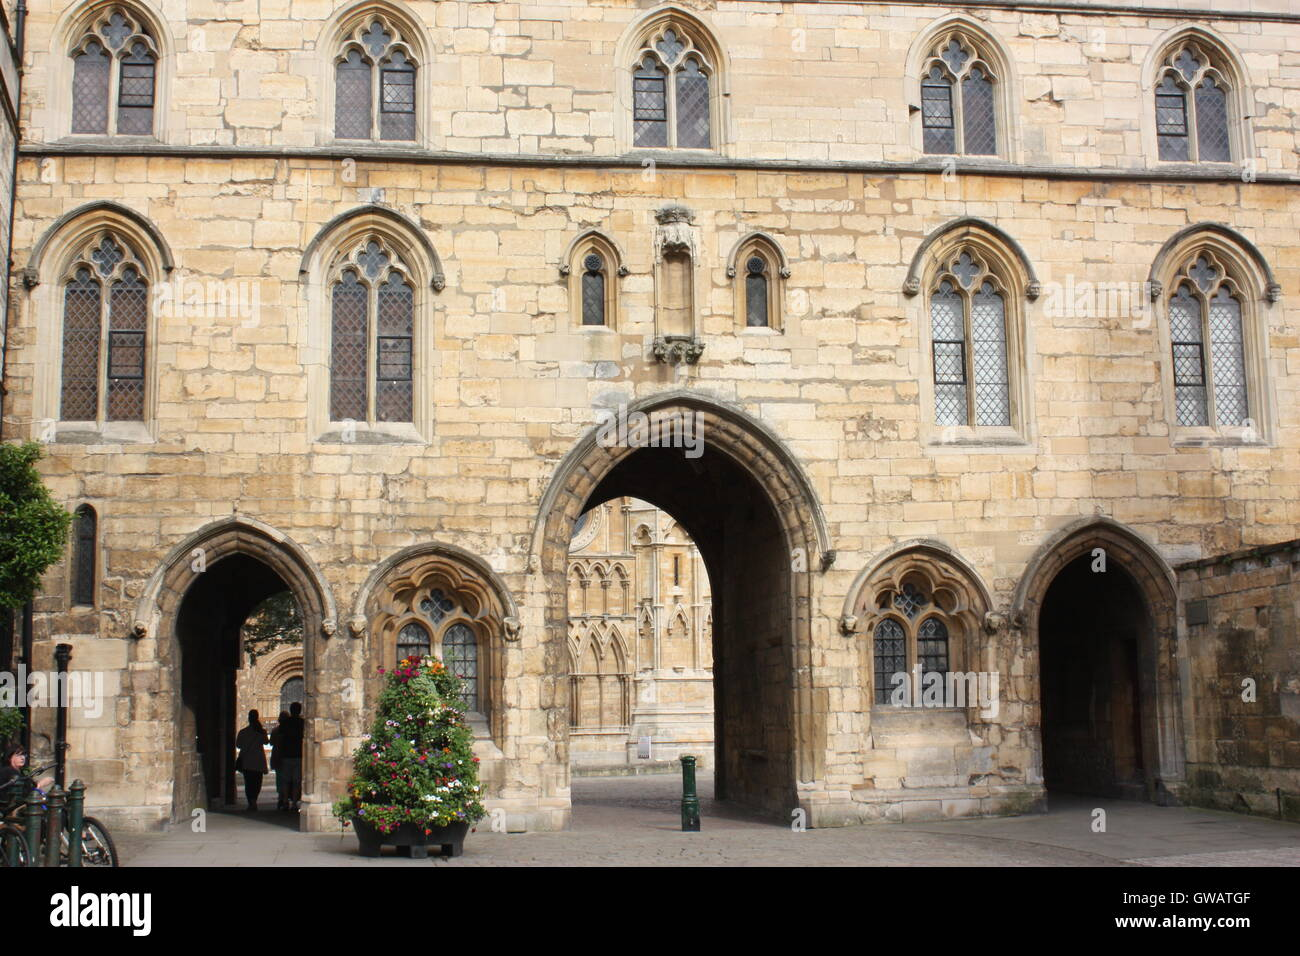 The Exchequer Gate, Lincoln, England Stock Photo